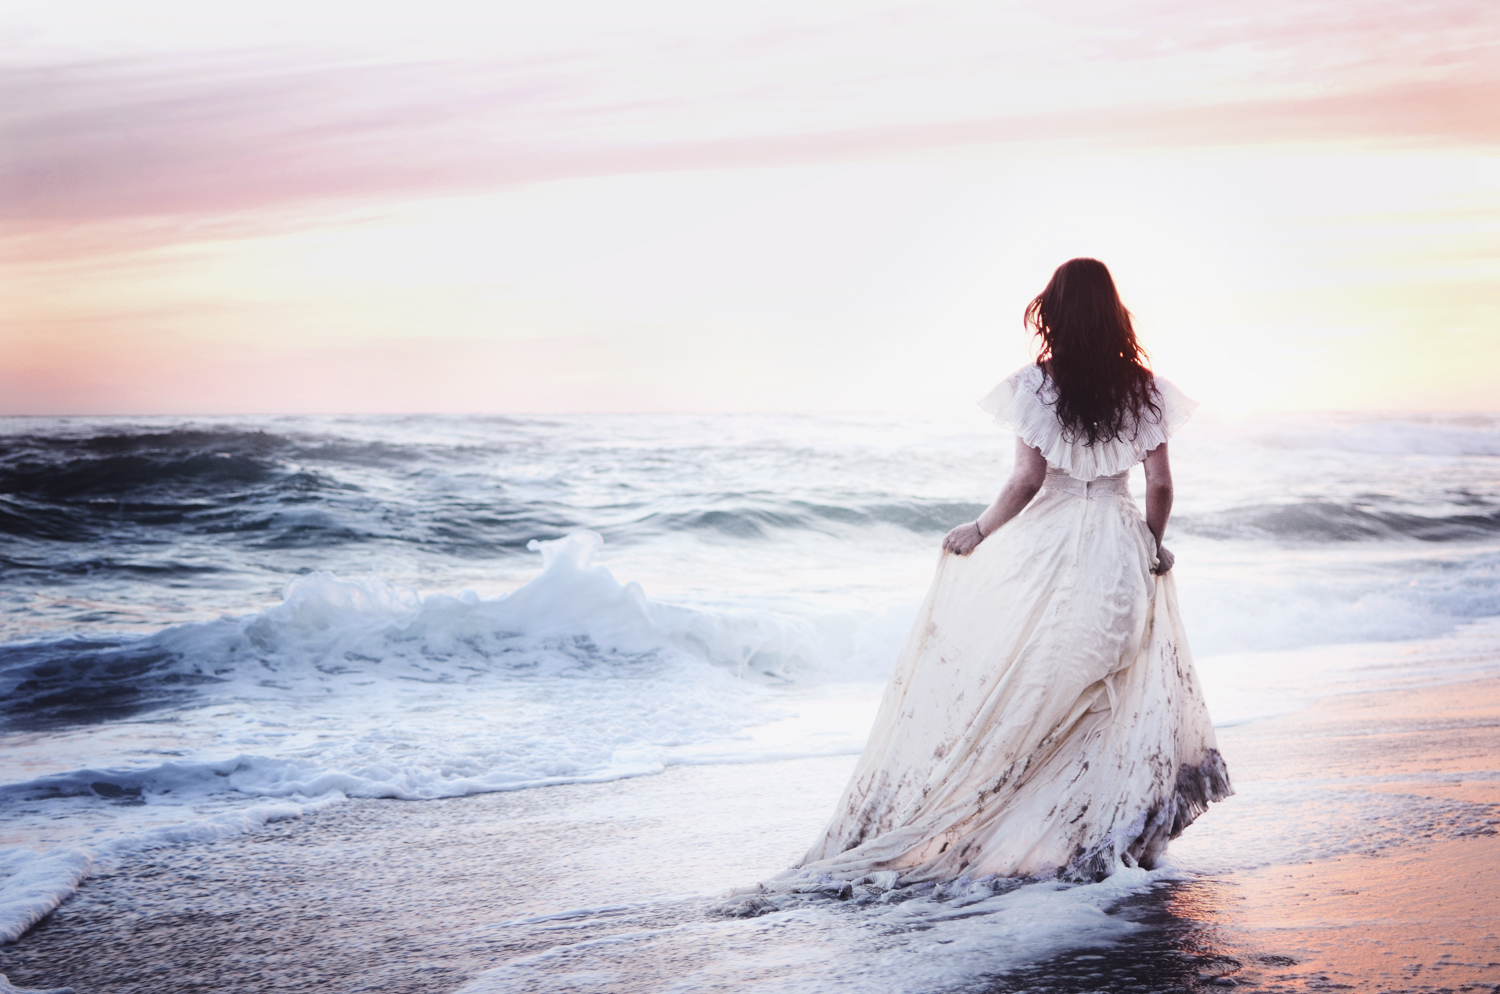 Chasing a Dream - Ethereal Ocean Sunset Portraiture